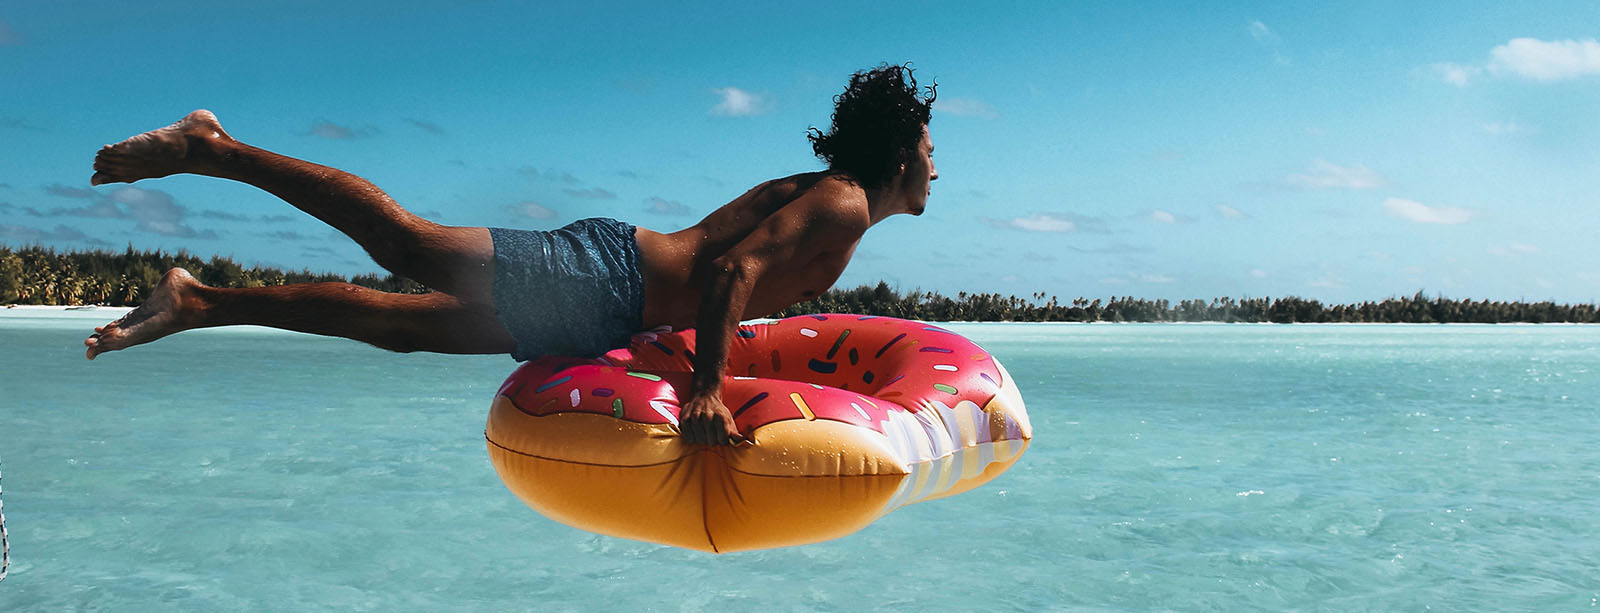 Guy jumping into the ocean with a donut inner tube.